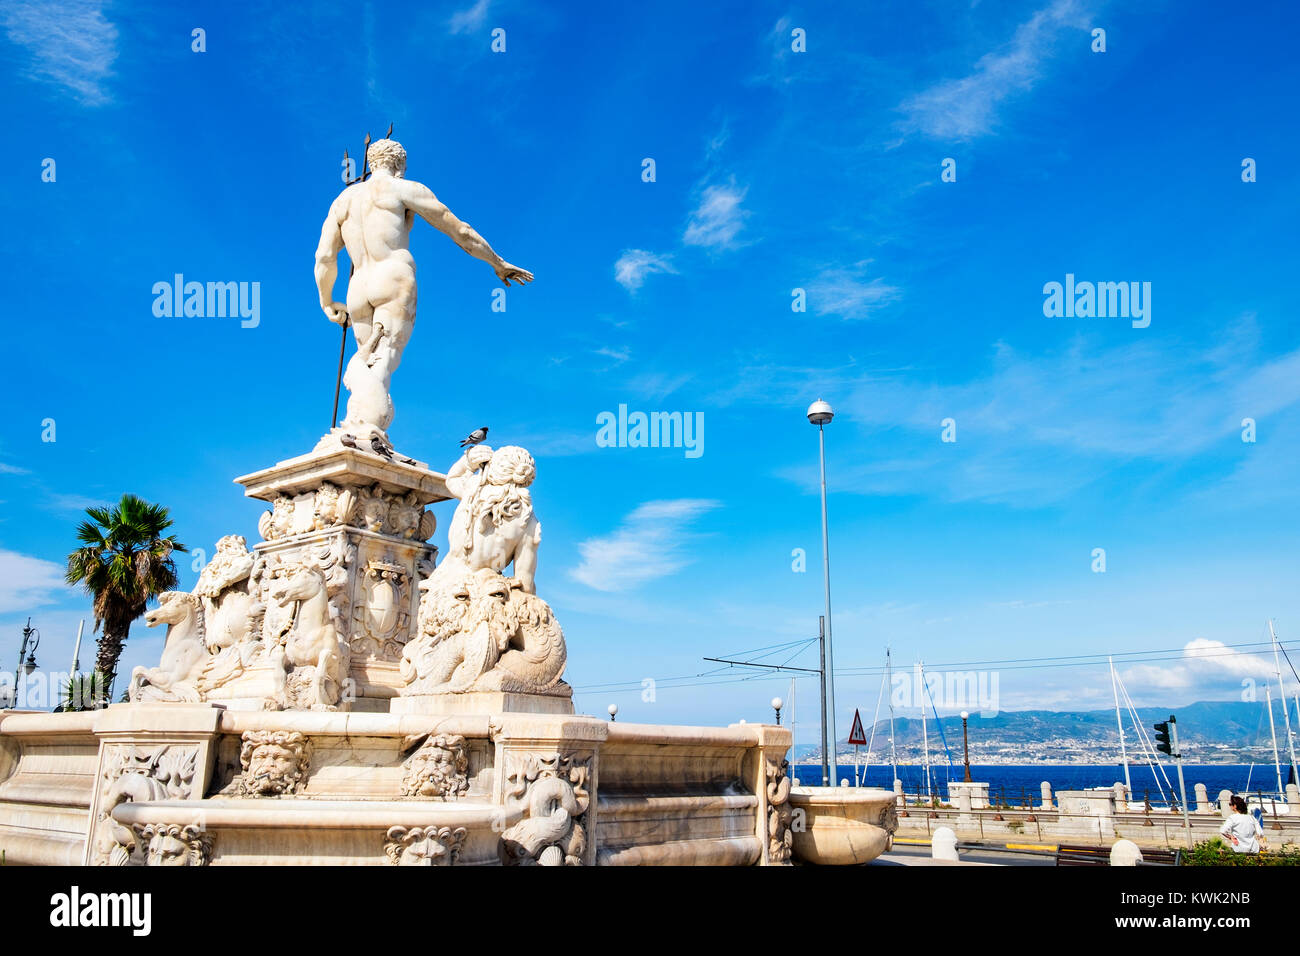 sculpture of neptune overlooking the harbor at messina on the island of sicily, italy. - Stock Image